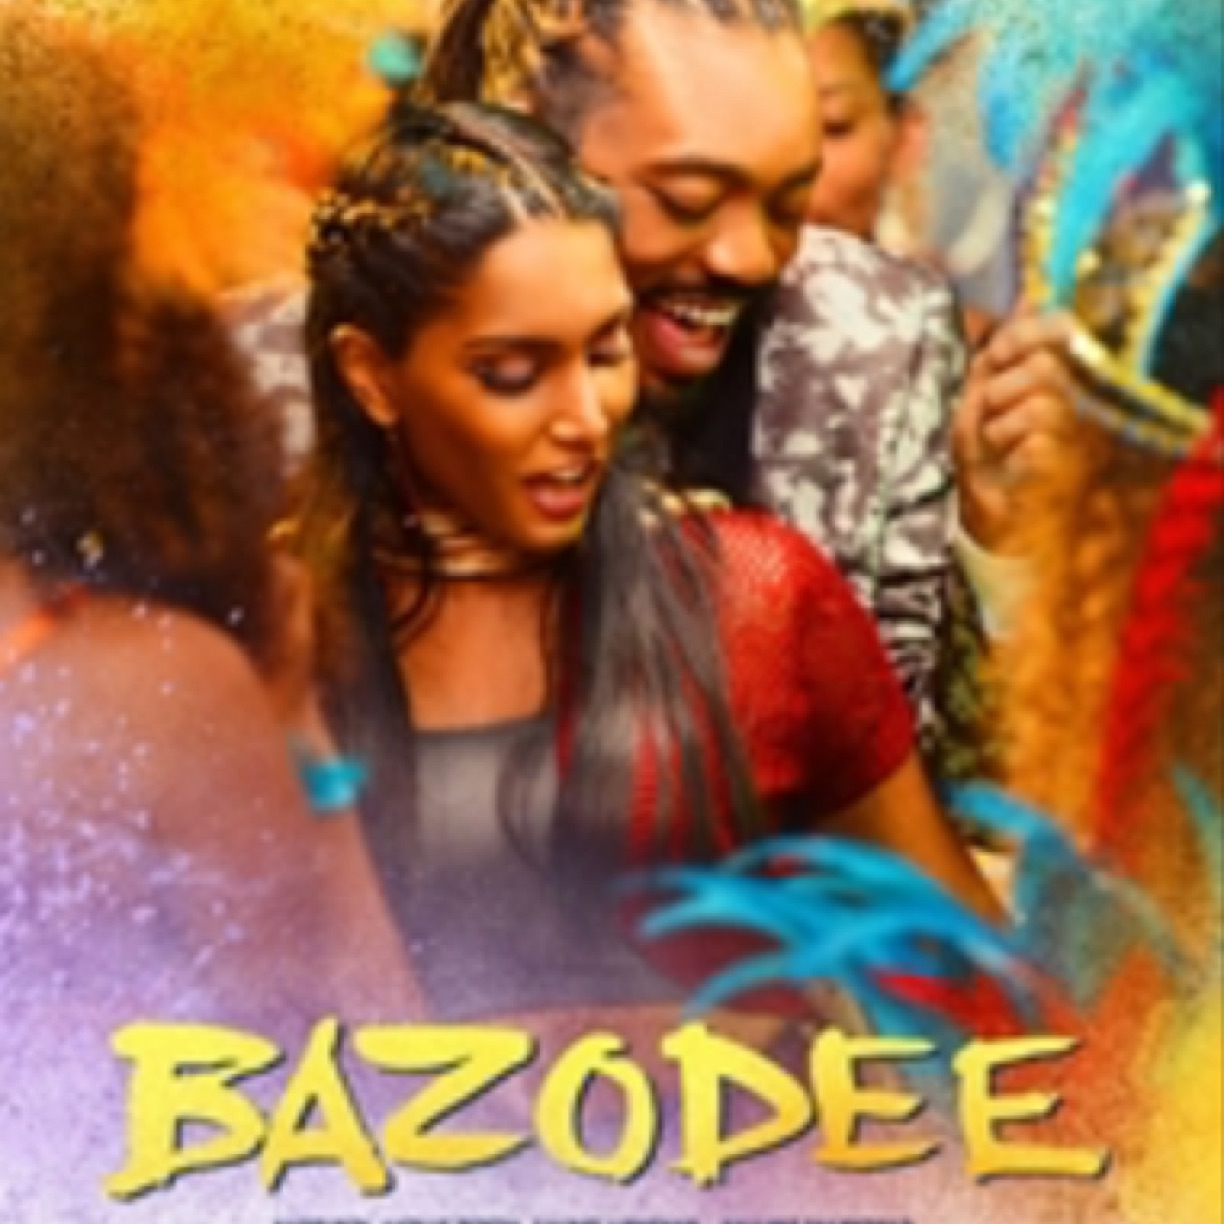 bazodee-for-website